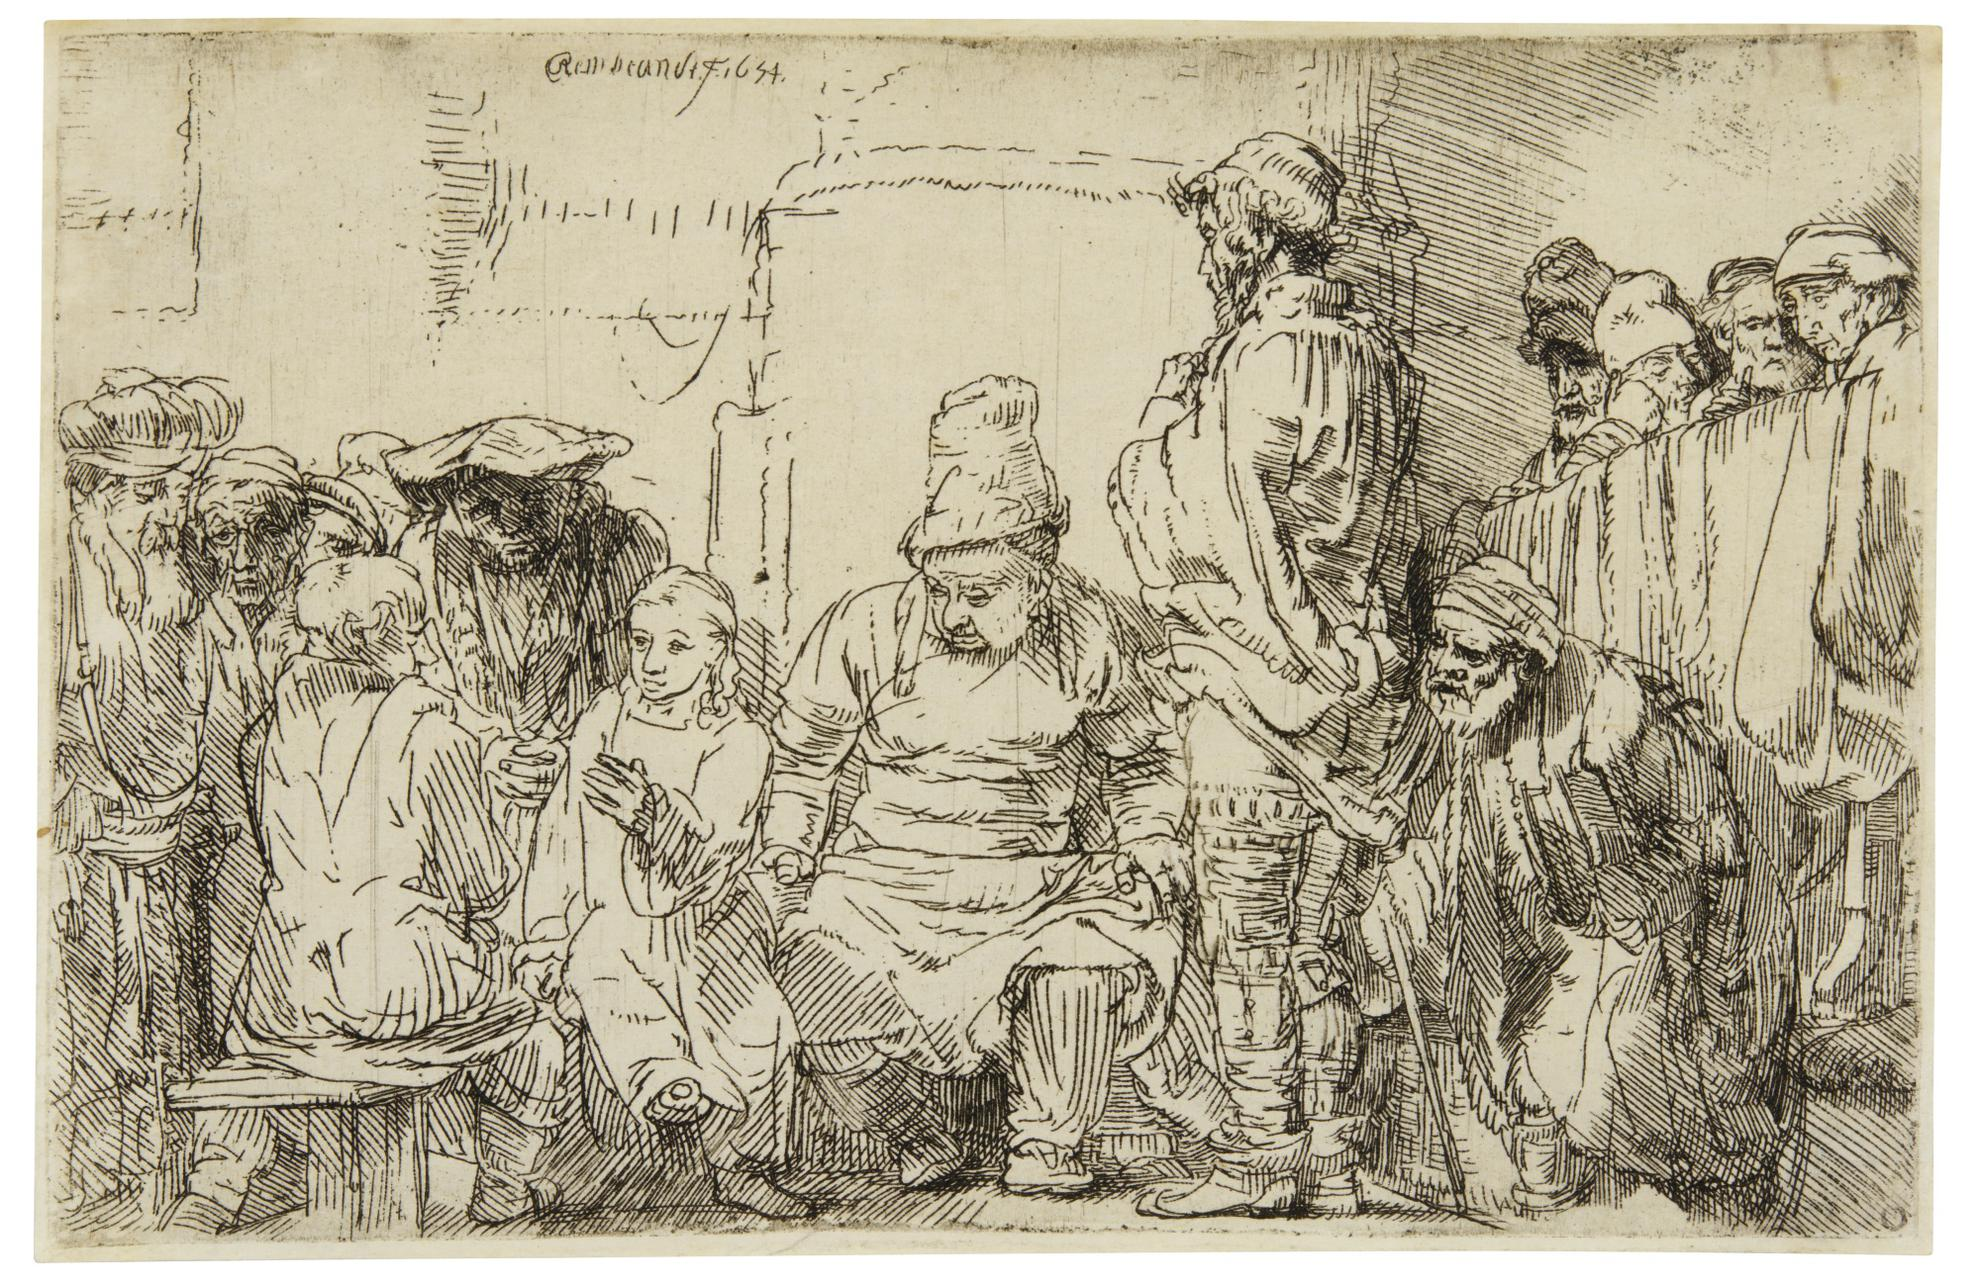 Rembrandt van Rijn-Christ Seated Disputing With The Doctors (B., Holl. 64; New Holl. 281; H. 277)-1654